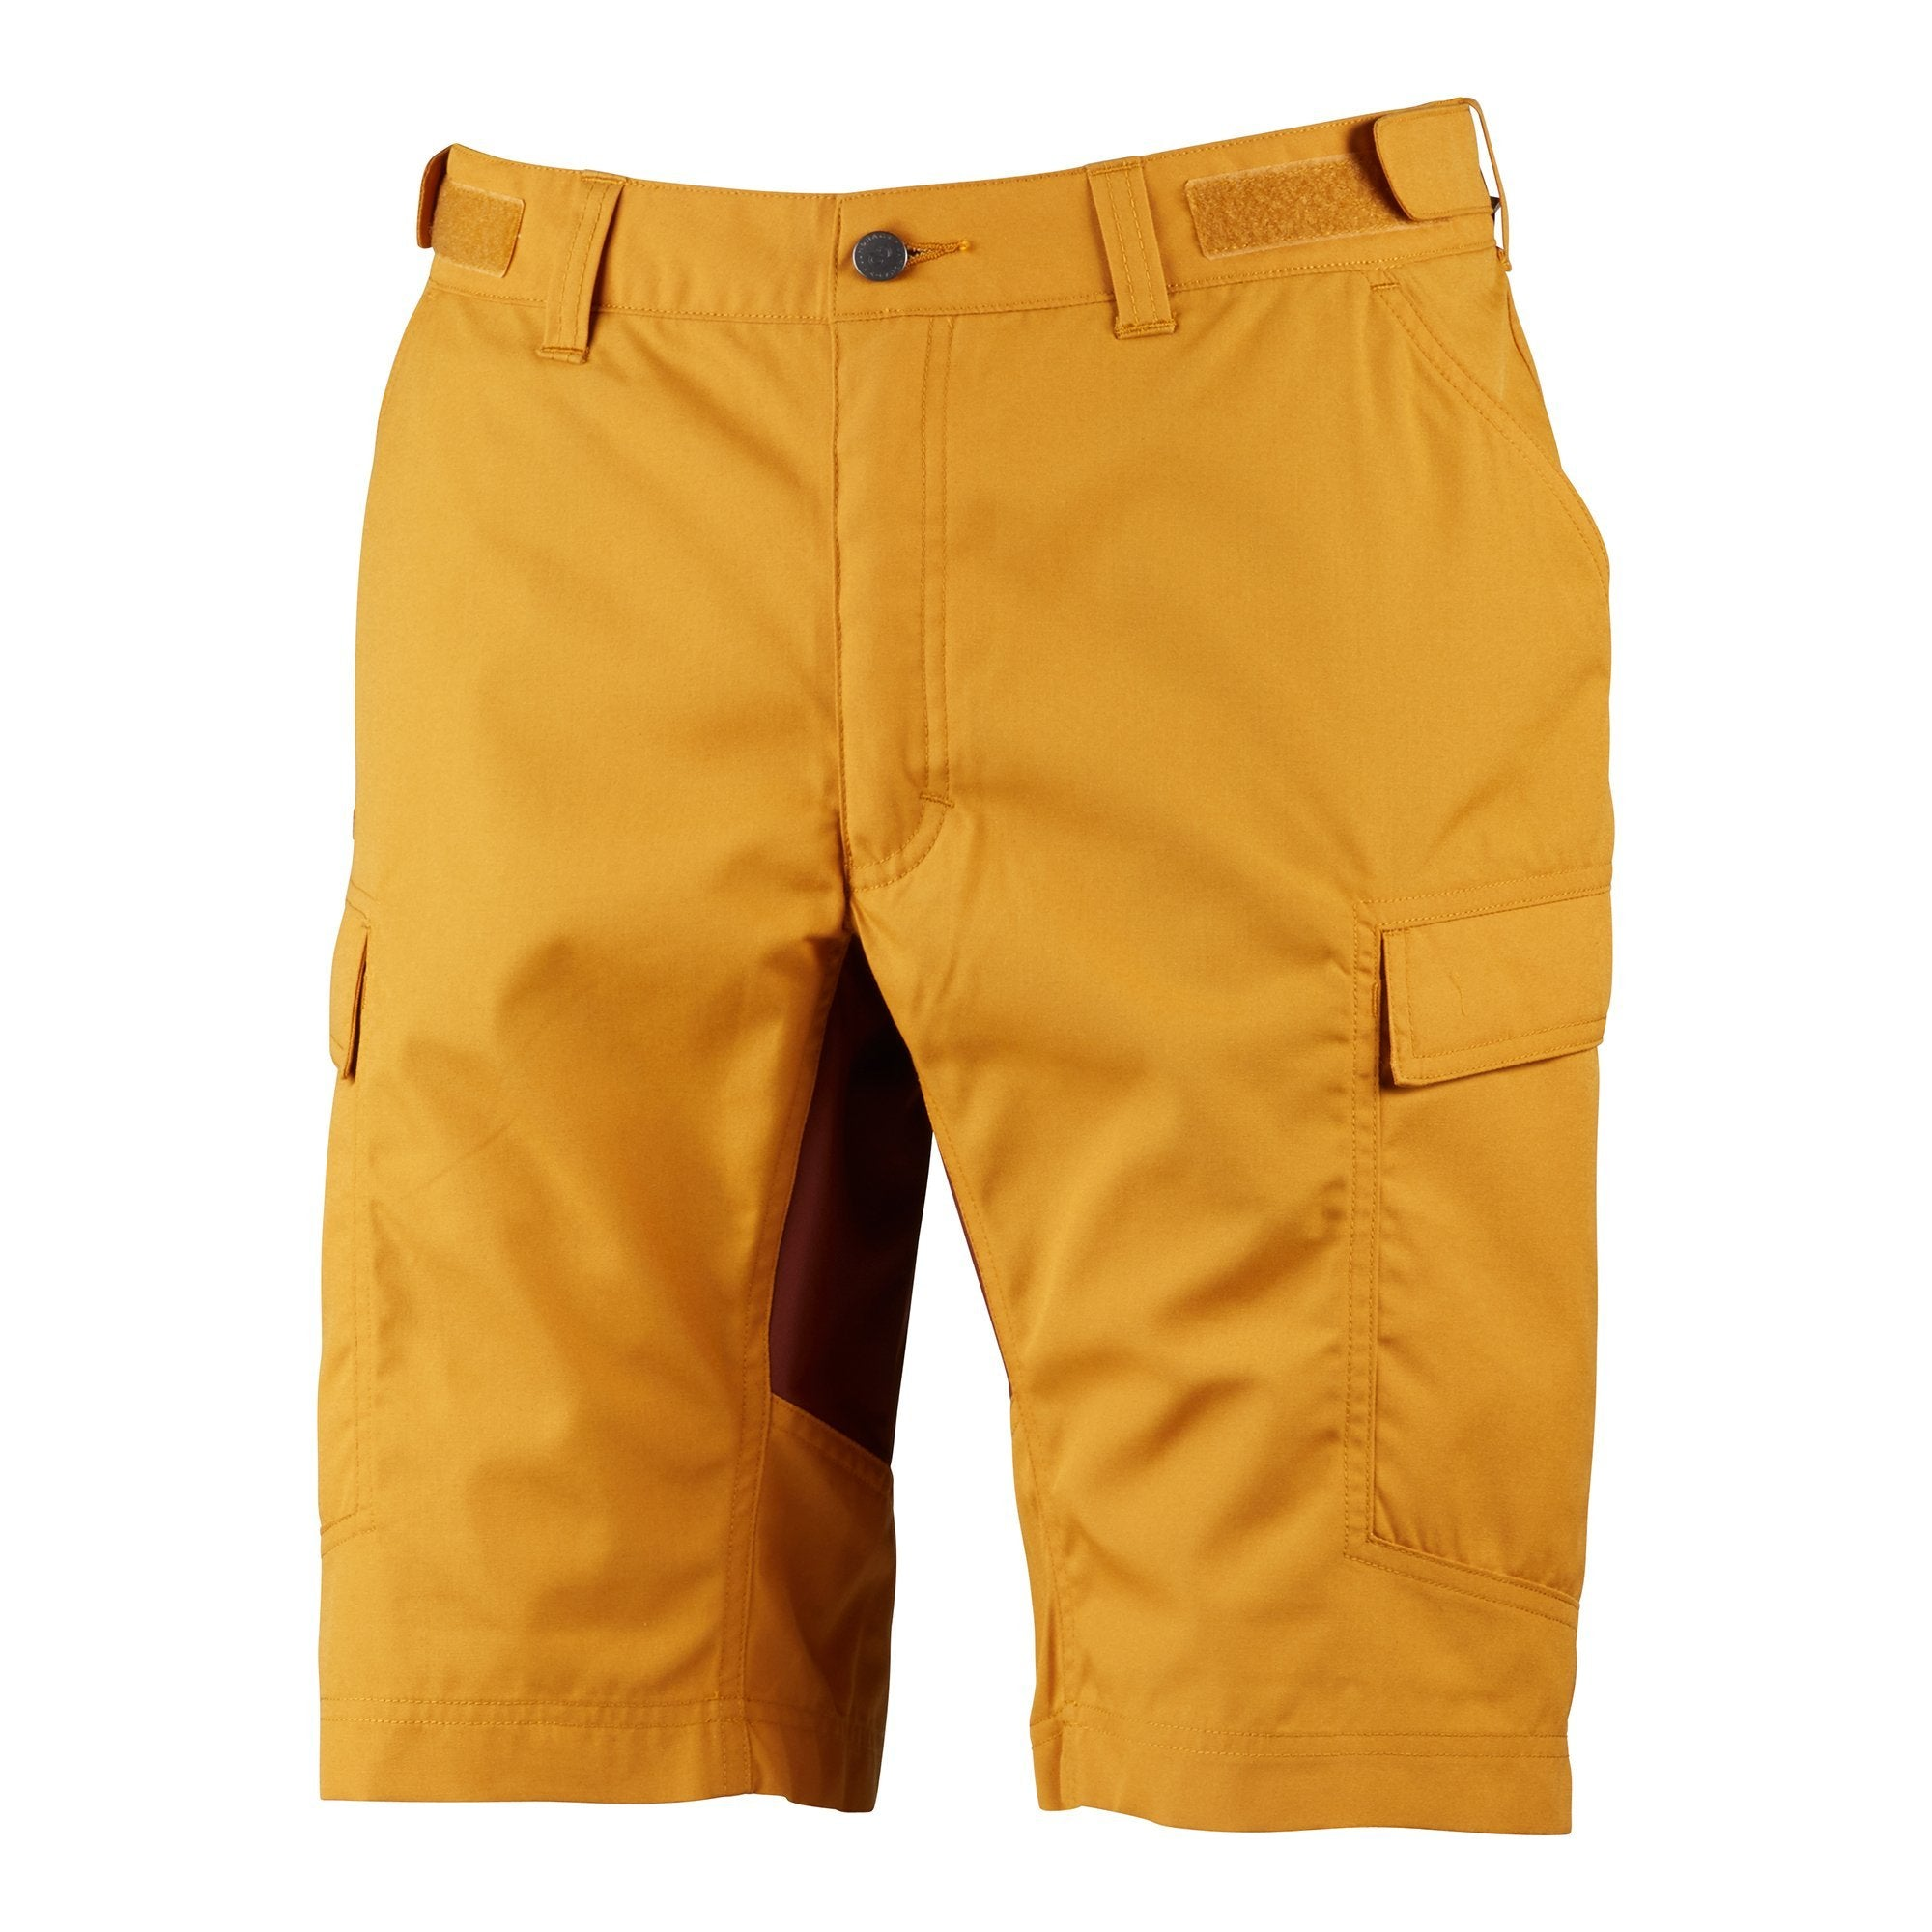 Vanner Shorts - Gold/Rust - Herr - Vindpinad